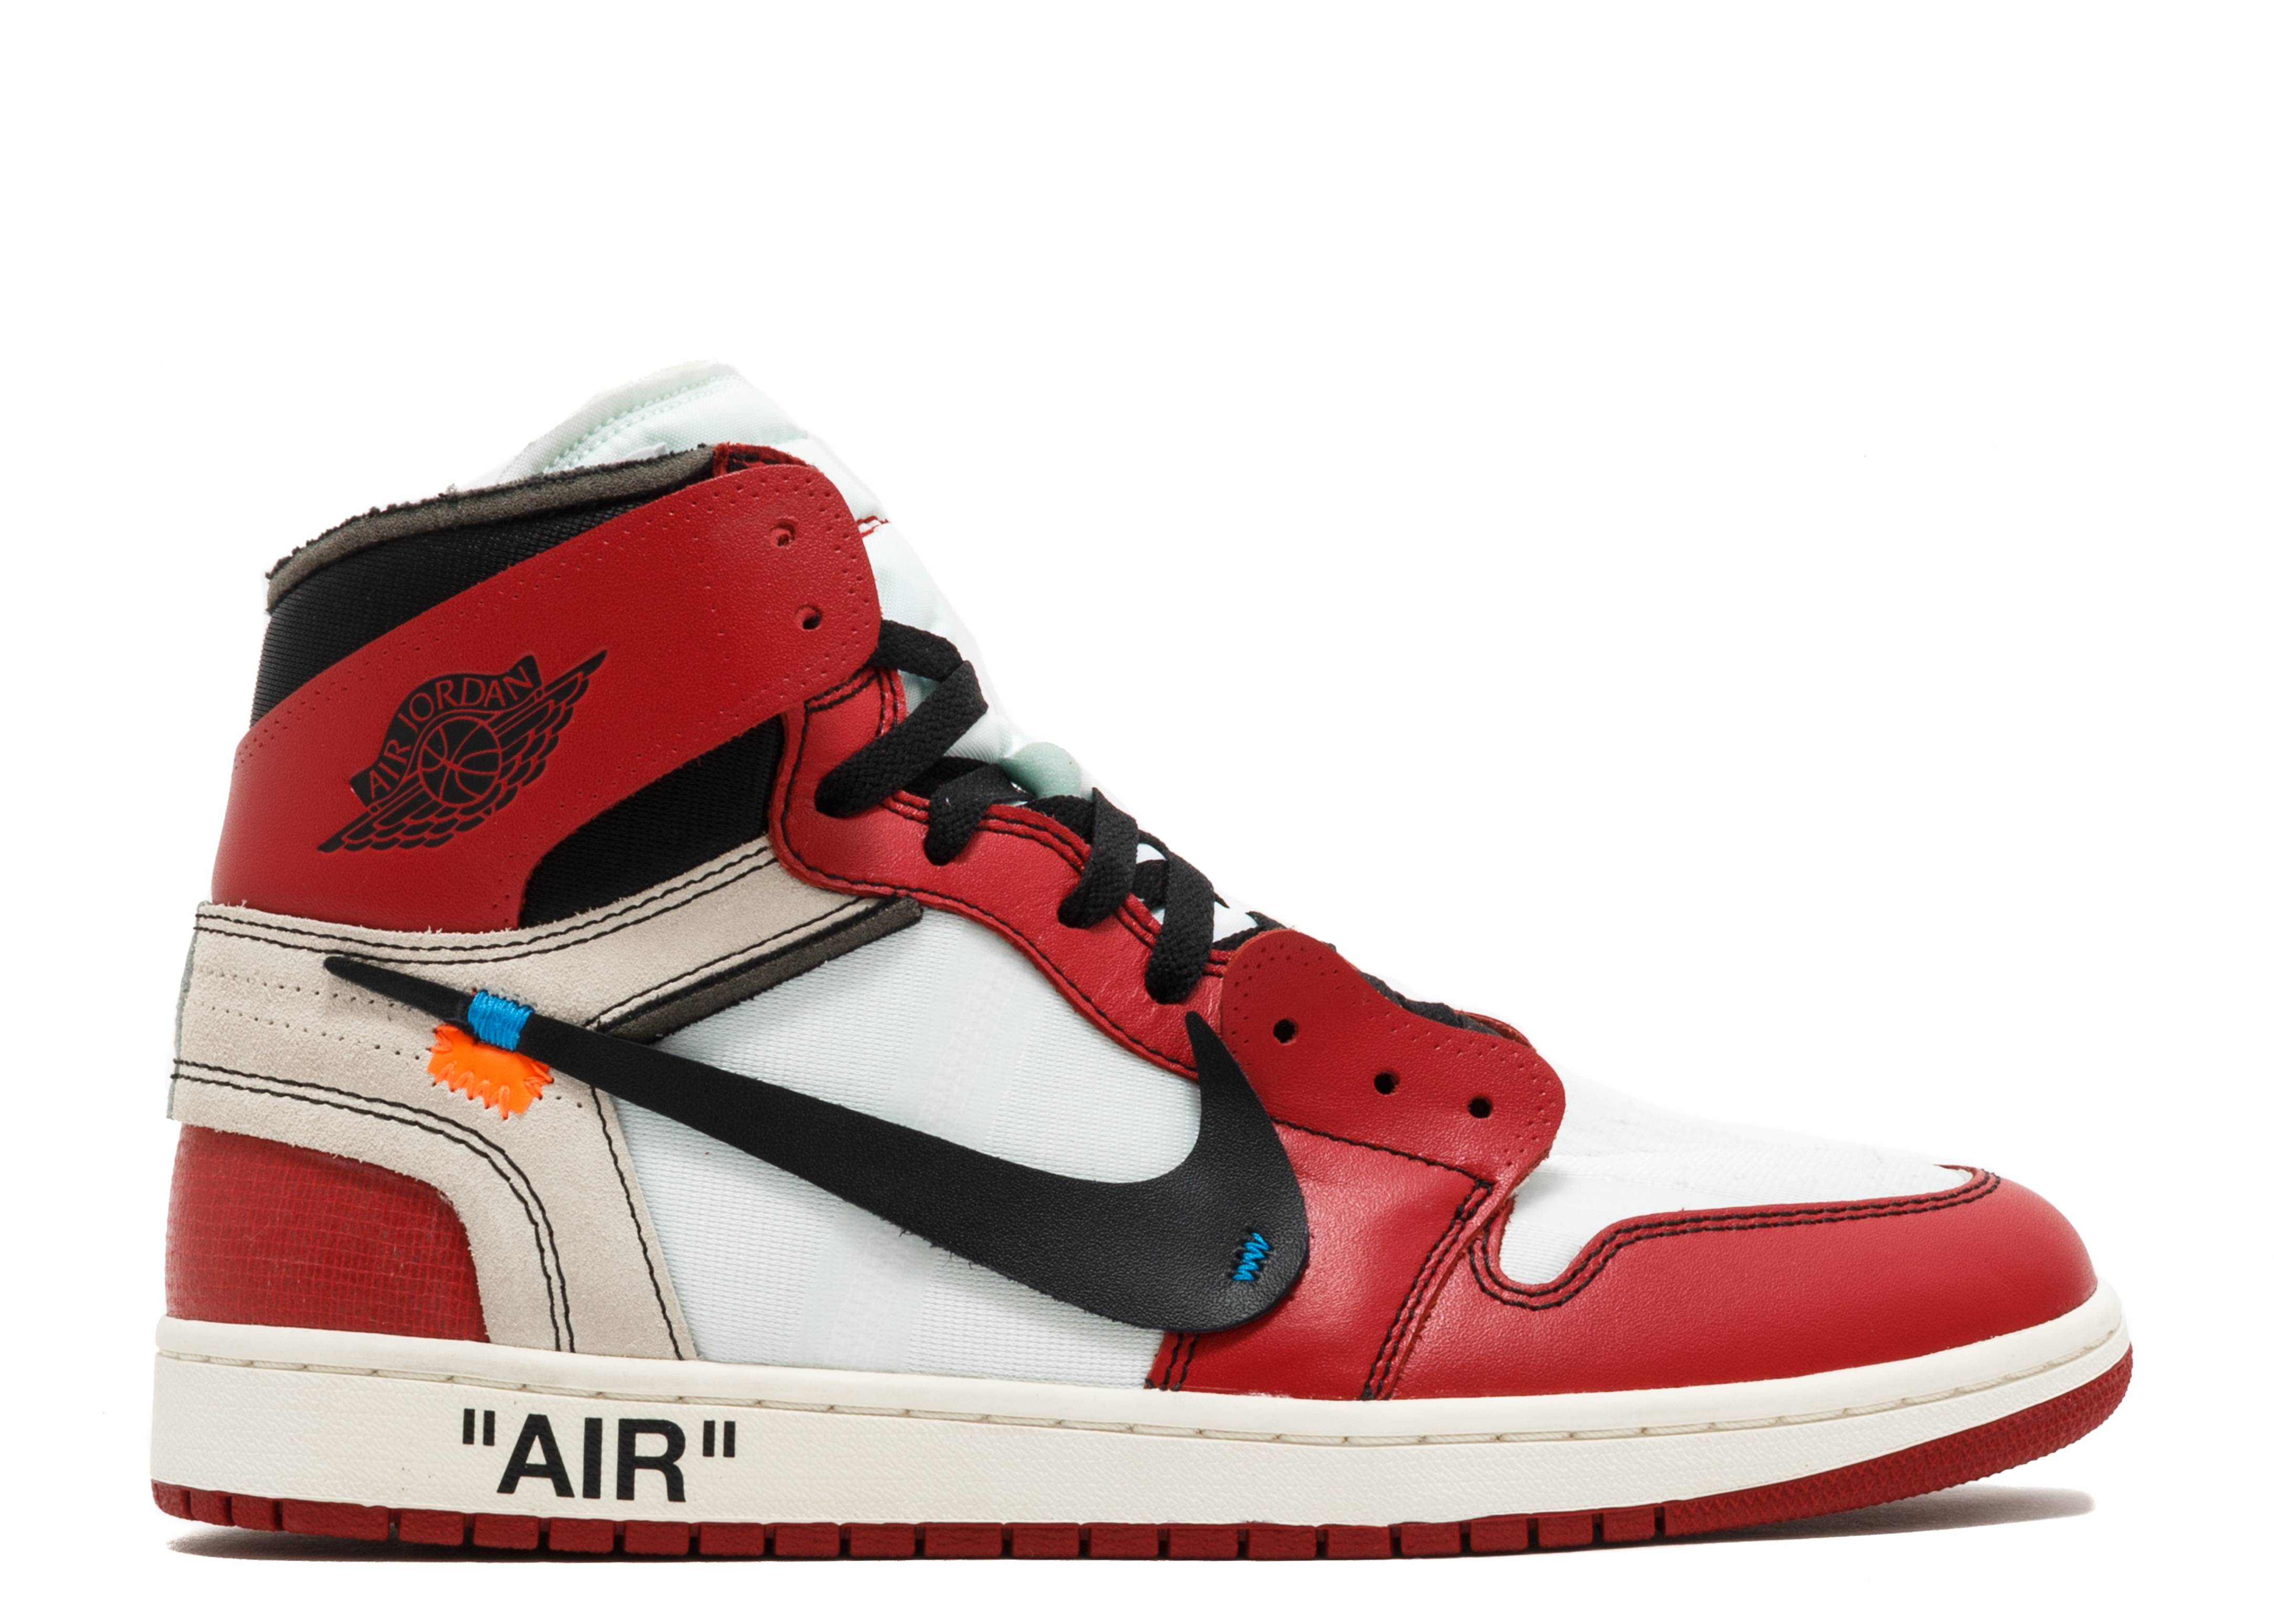 check out 60843 255ff OFF-WHITE x Air Jordan 1 Retro High OG  Chicago